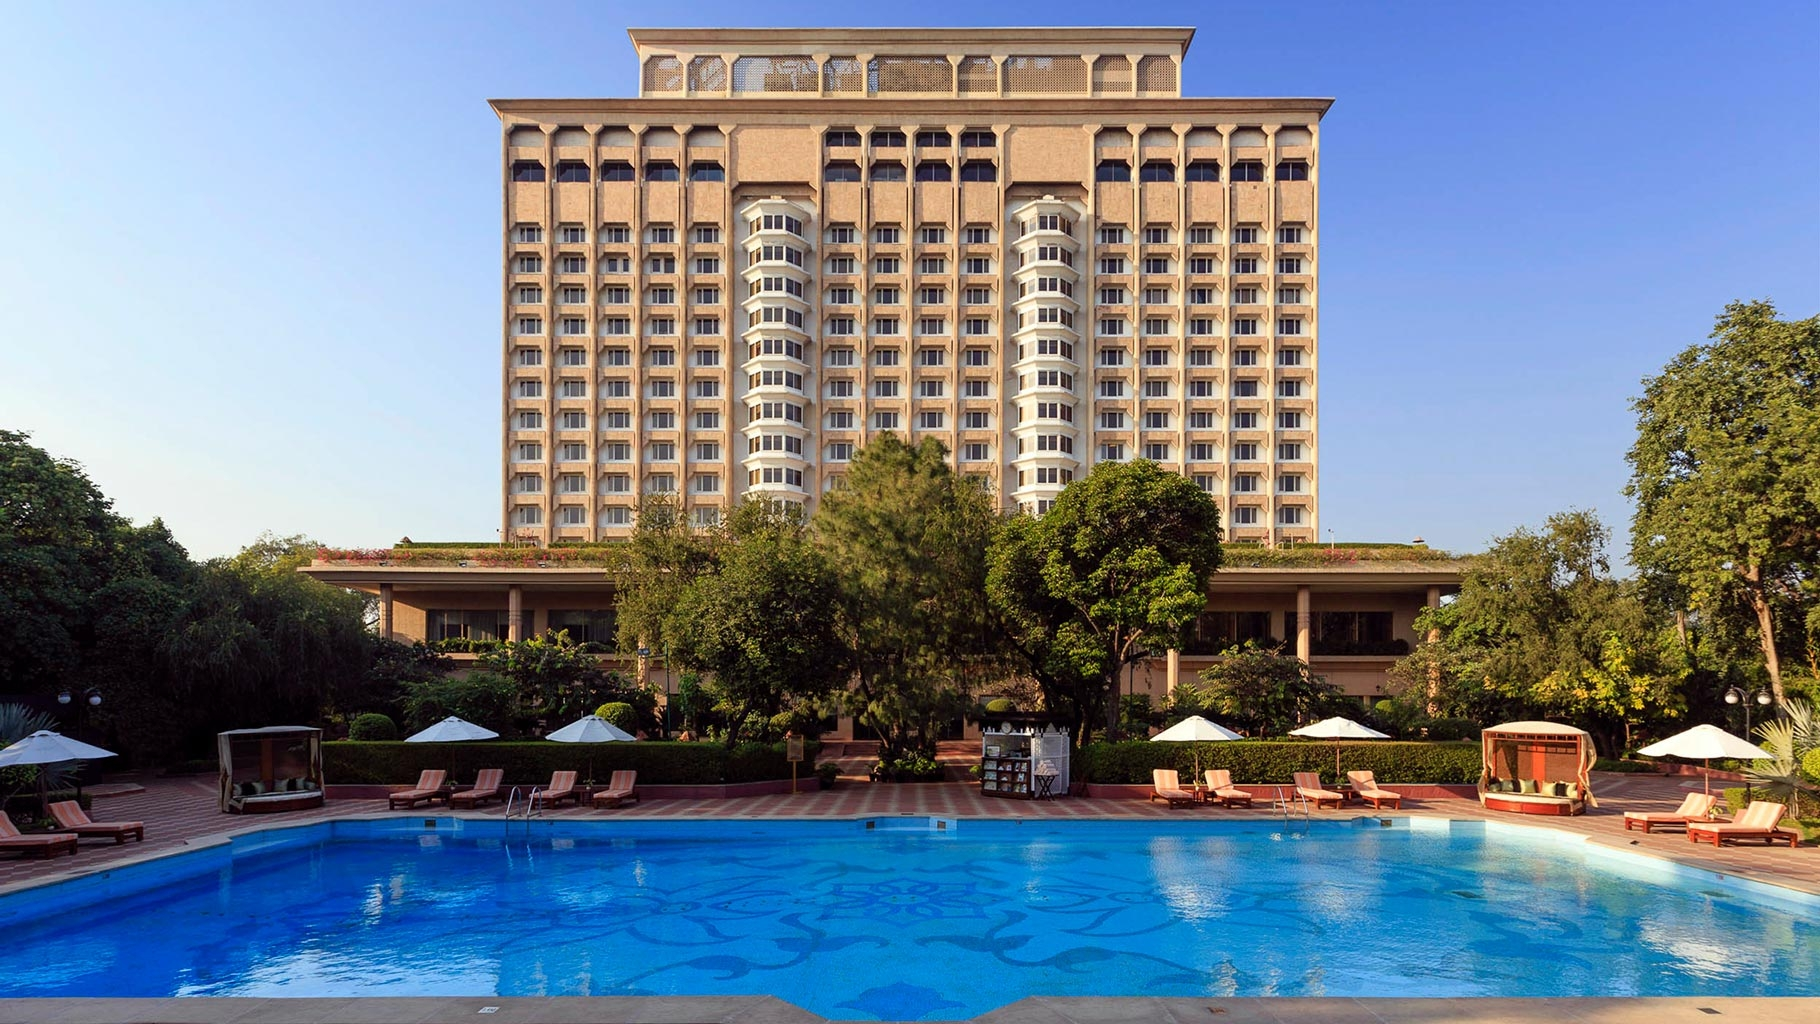 economic factors affecting taj hotels The analysis of factors affecting choice found that students consider more carefully economic factors in measuring hotel college factors' attributes on.